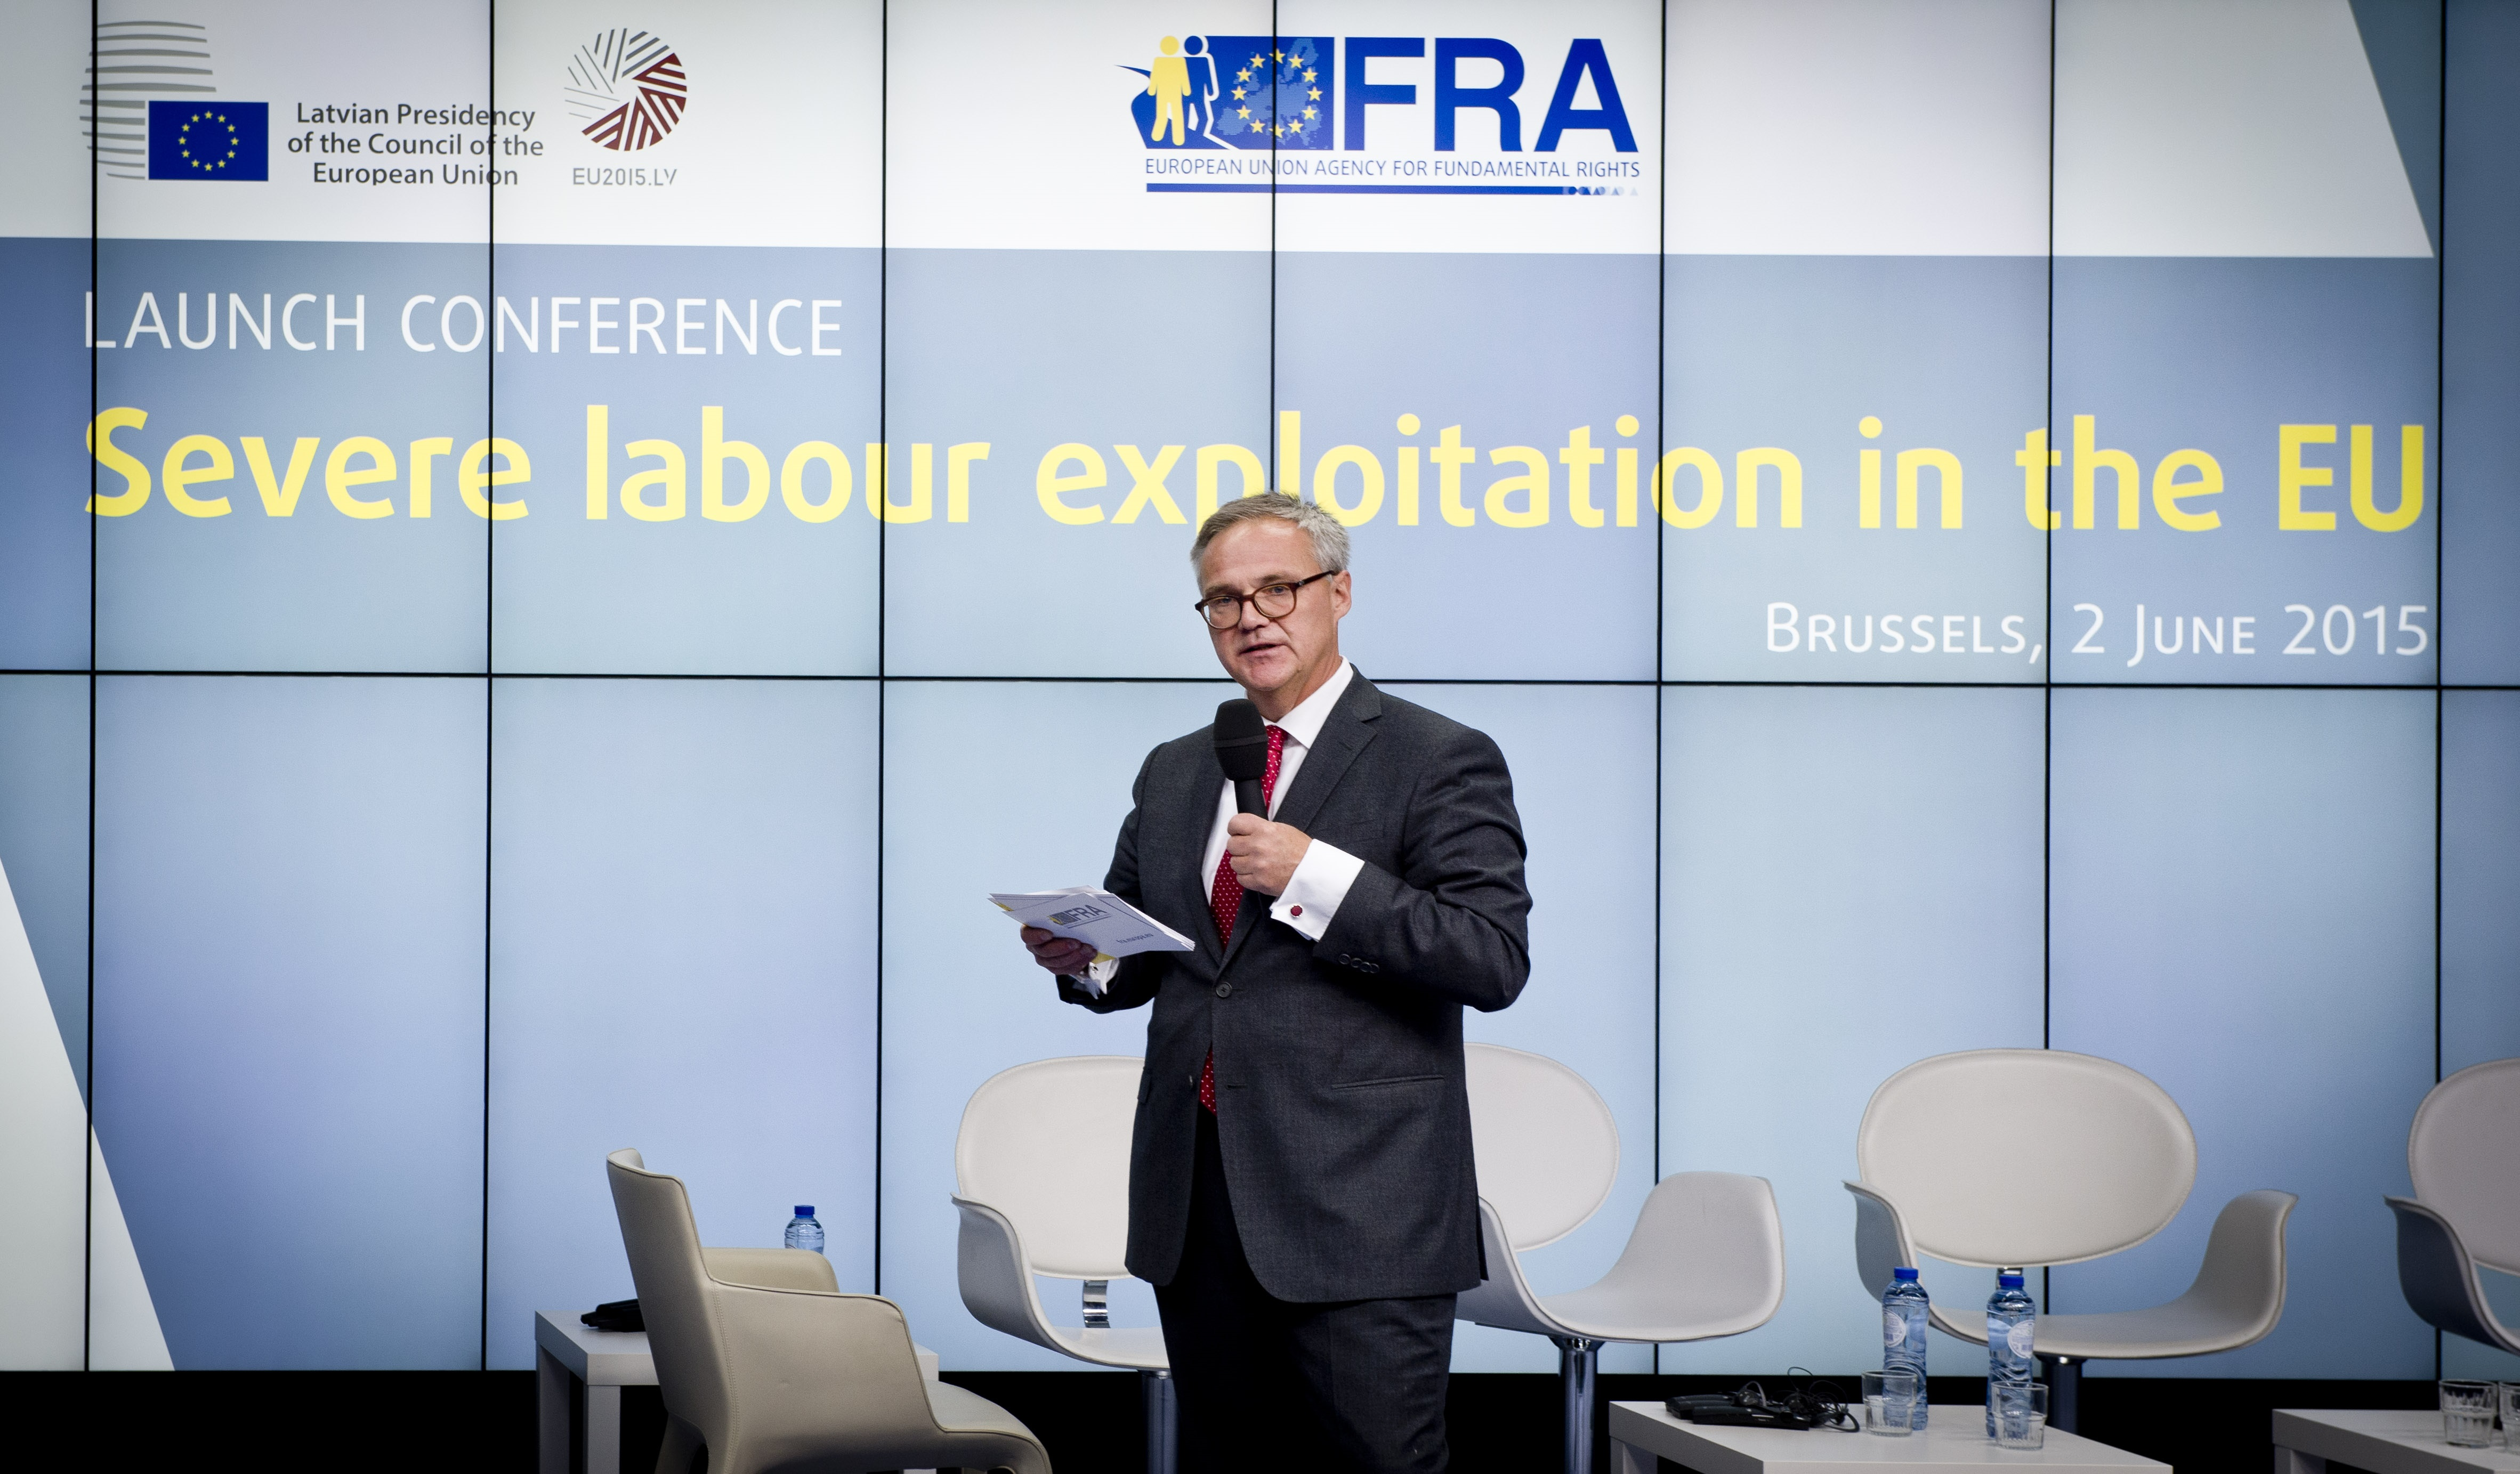 FRA's Friso Roscam Abbing welcomes participants